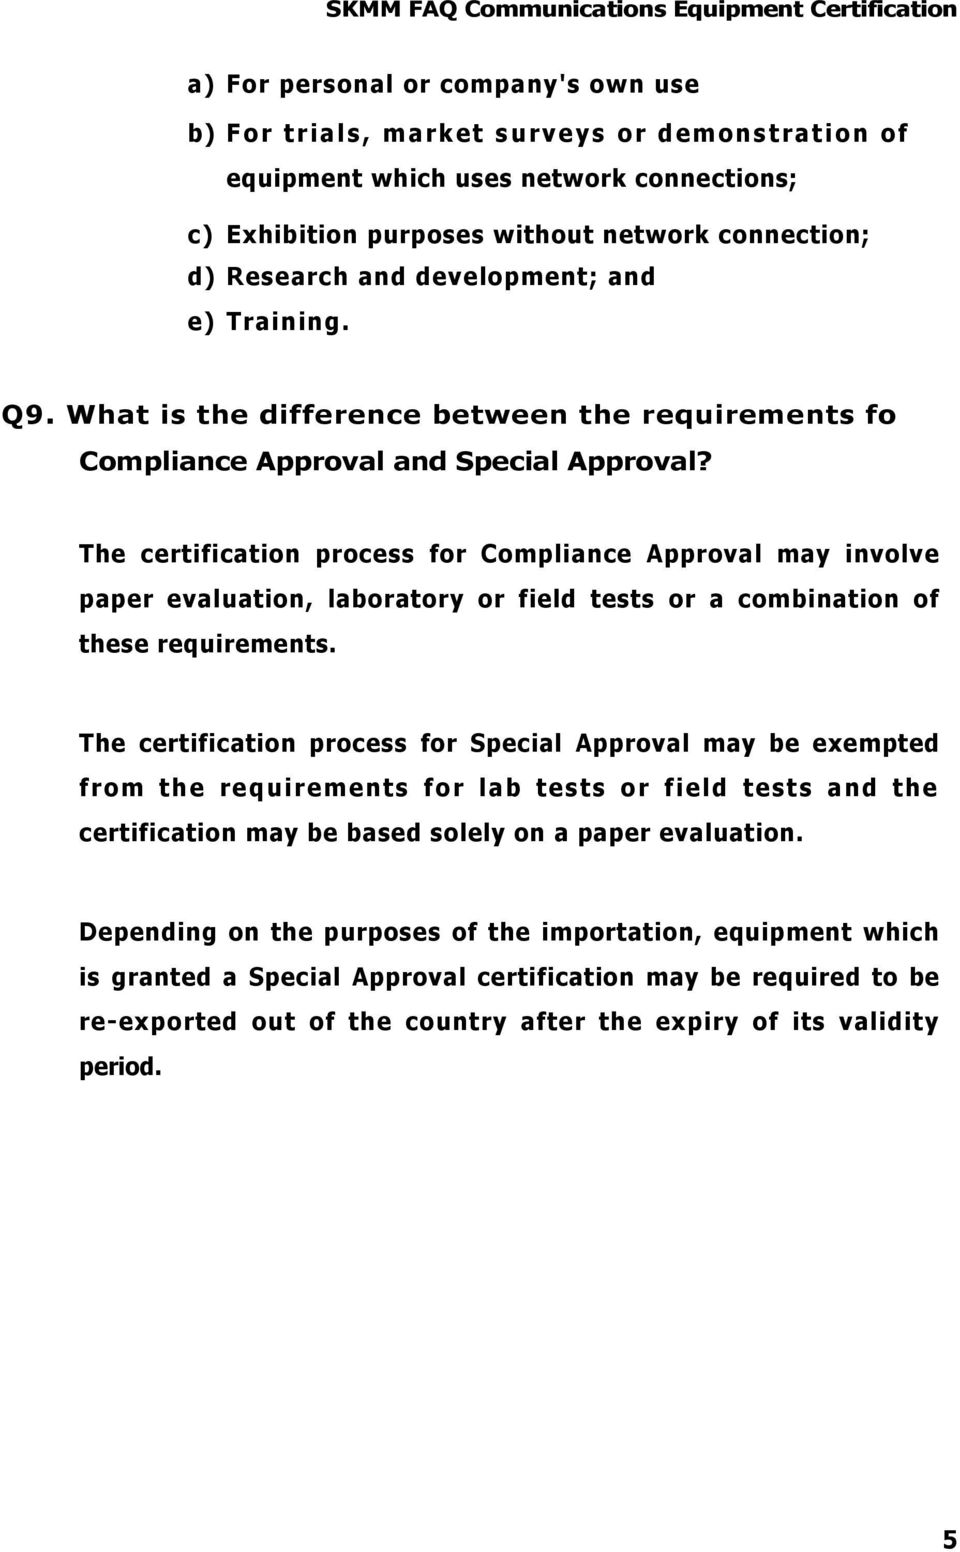 The certification process for Compliance Approval may involve paper evaluation, laboratory or field tests or a combination of these requirements.